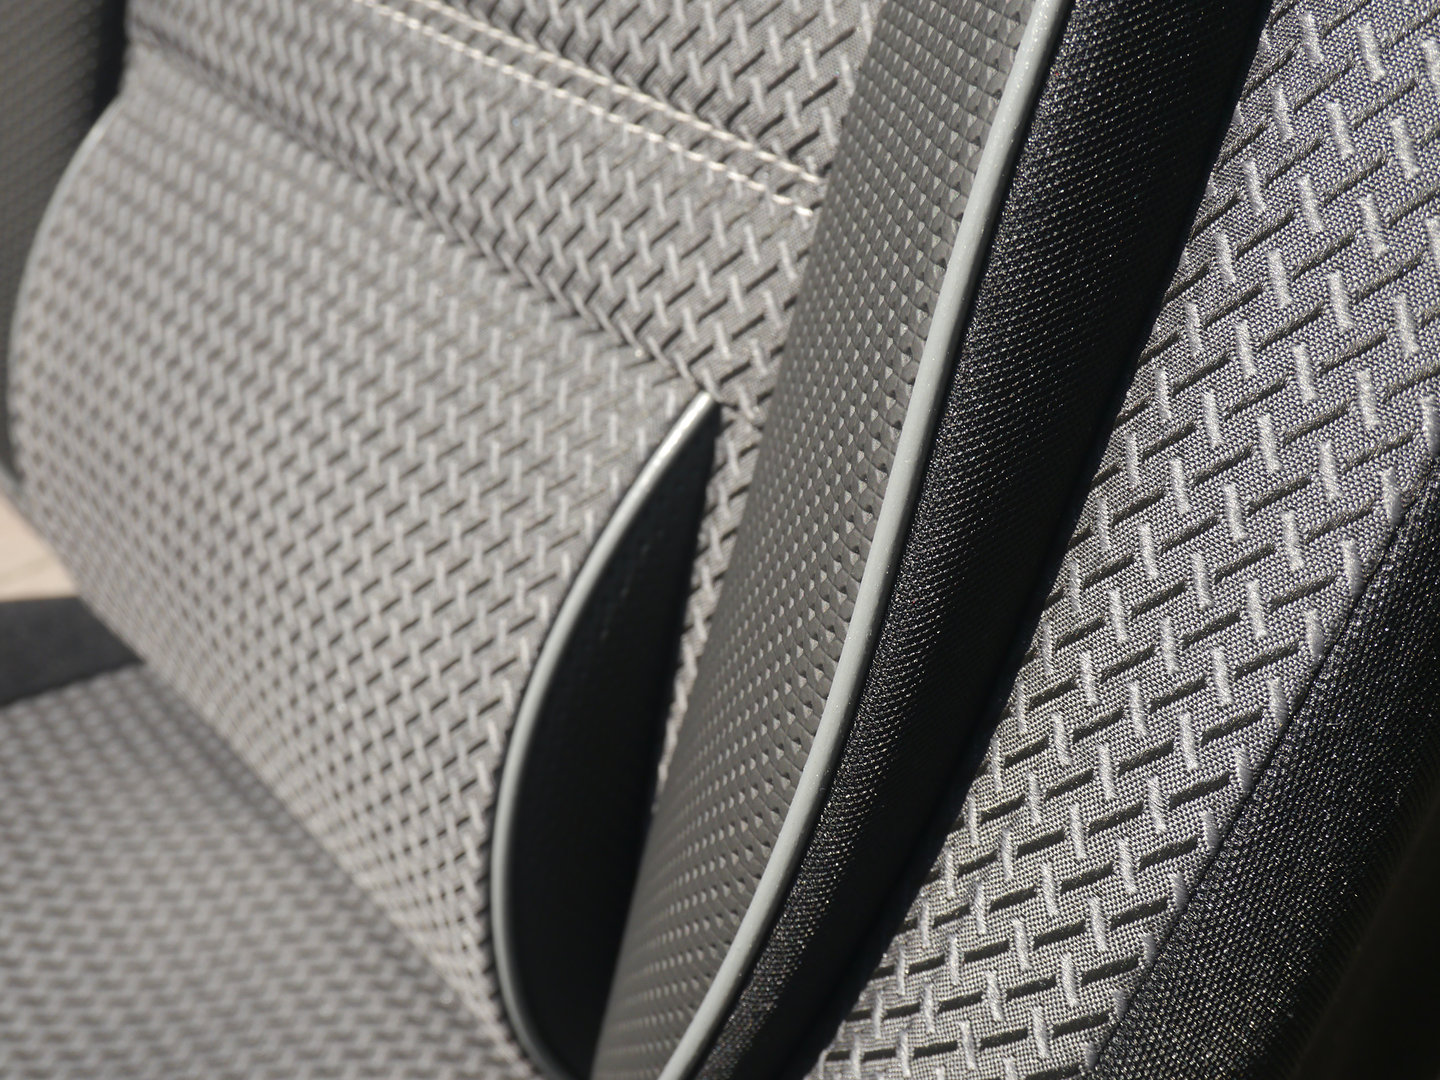 Mercedes Benz Seat Material